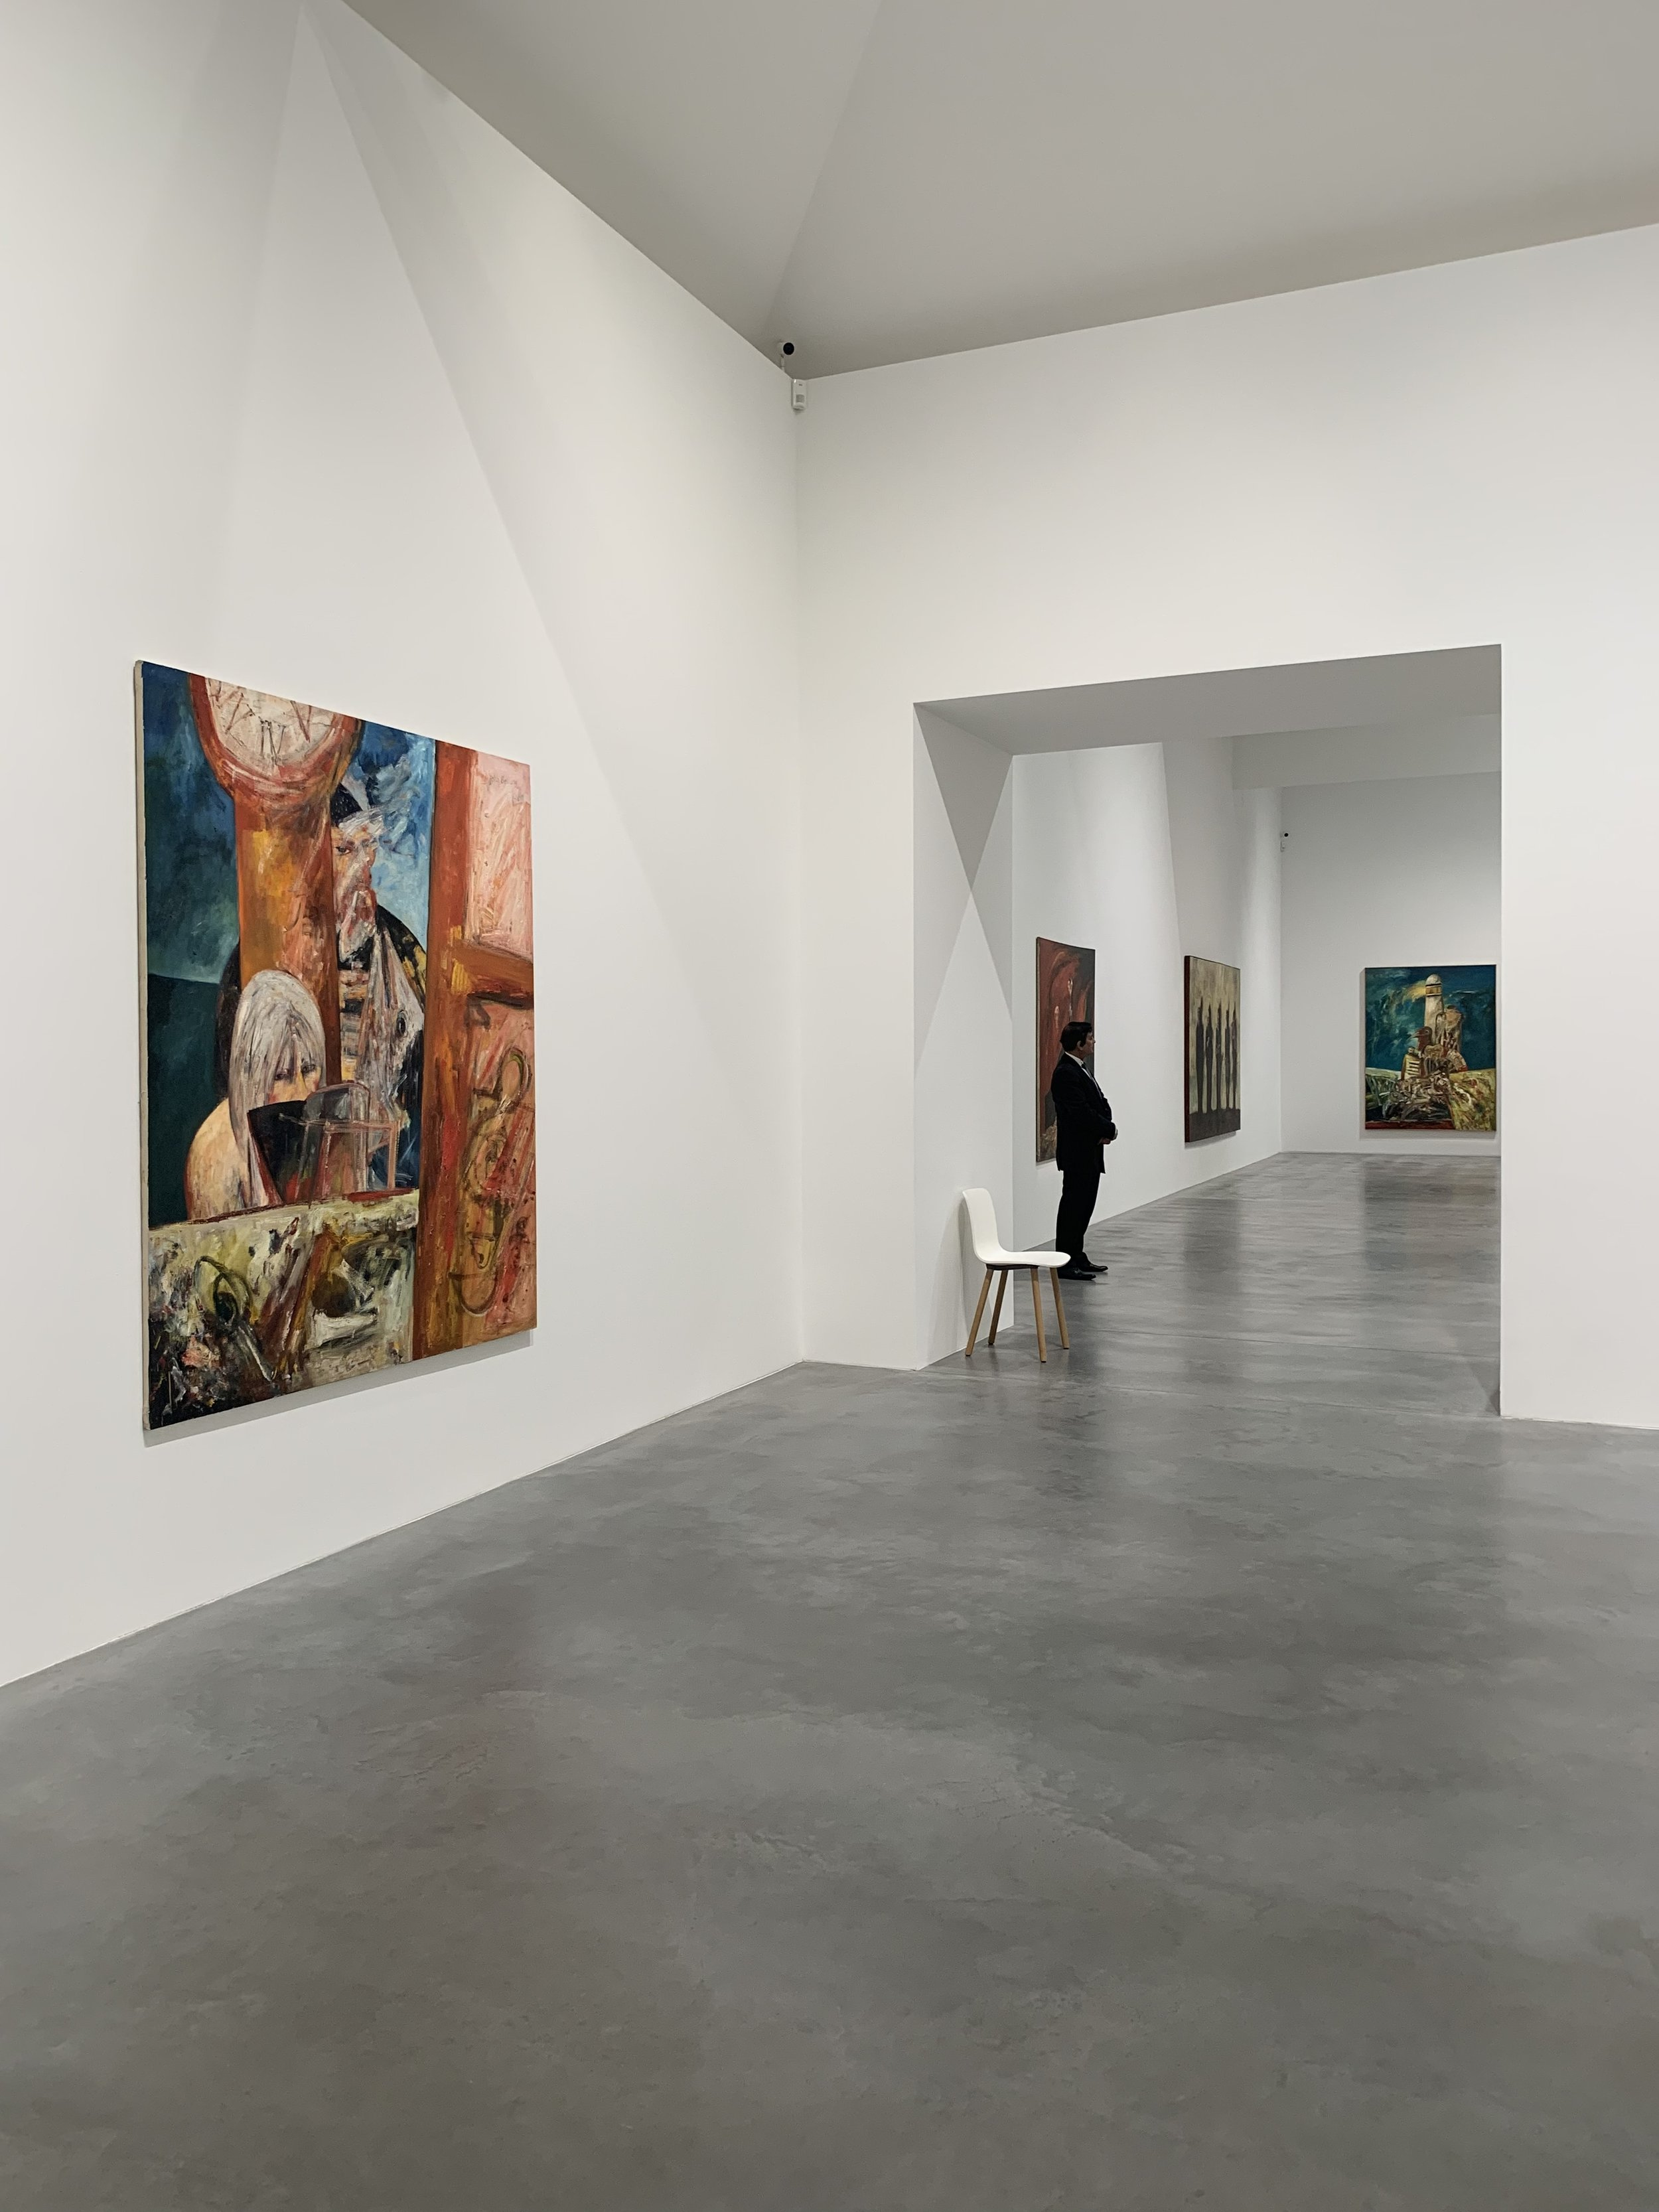 Installation shot of 'Cradle of Magic' at Newport street gallery.